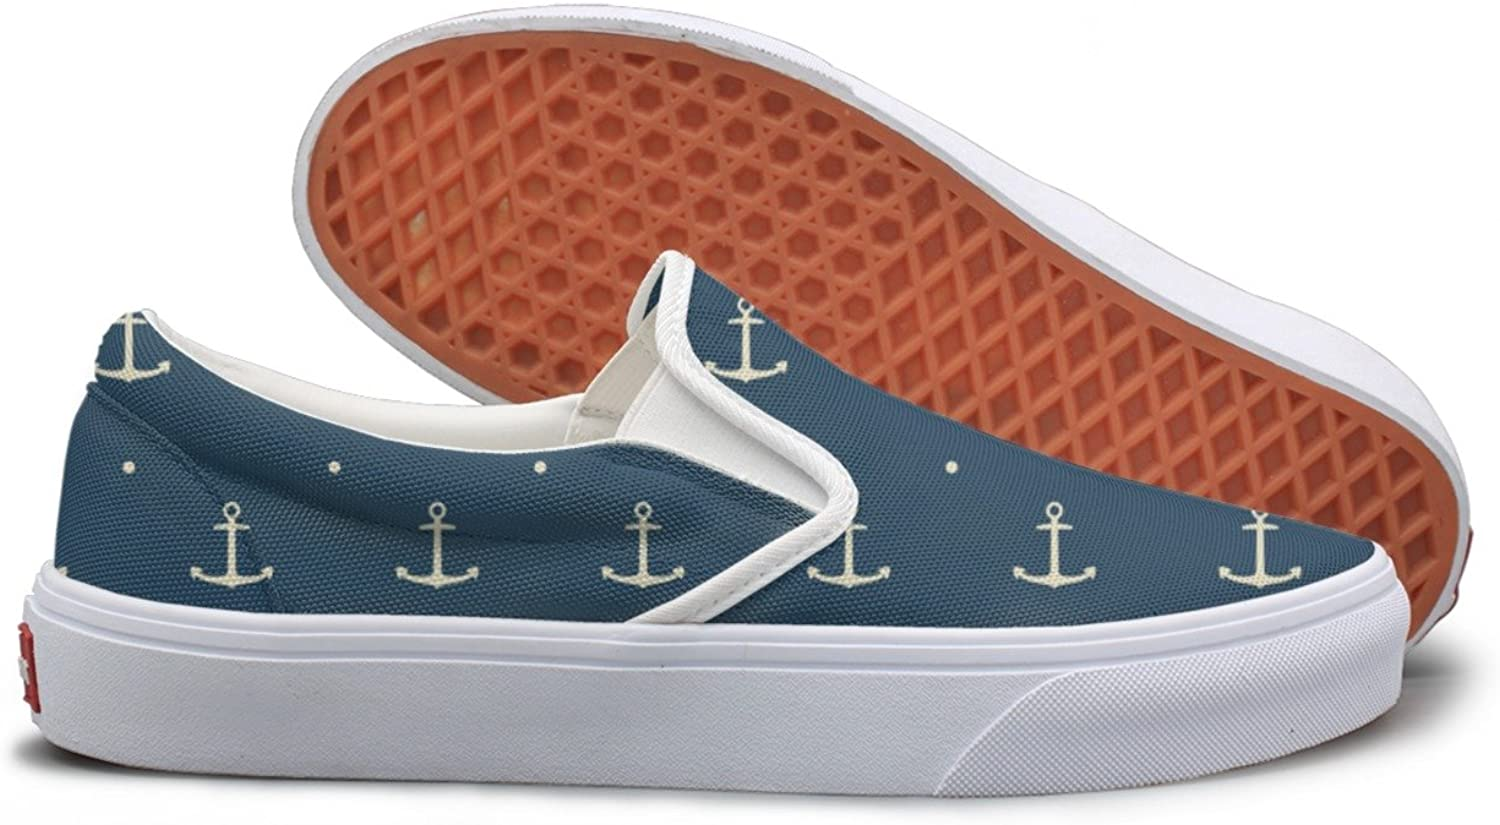 SEERTED Dark bluee Boat Anchor School Sneakers for Girls